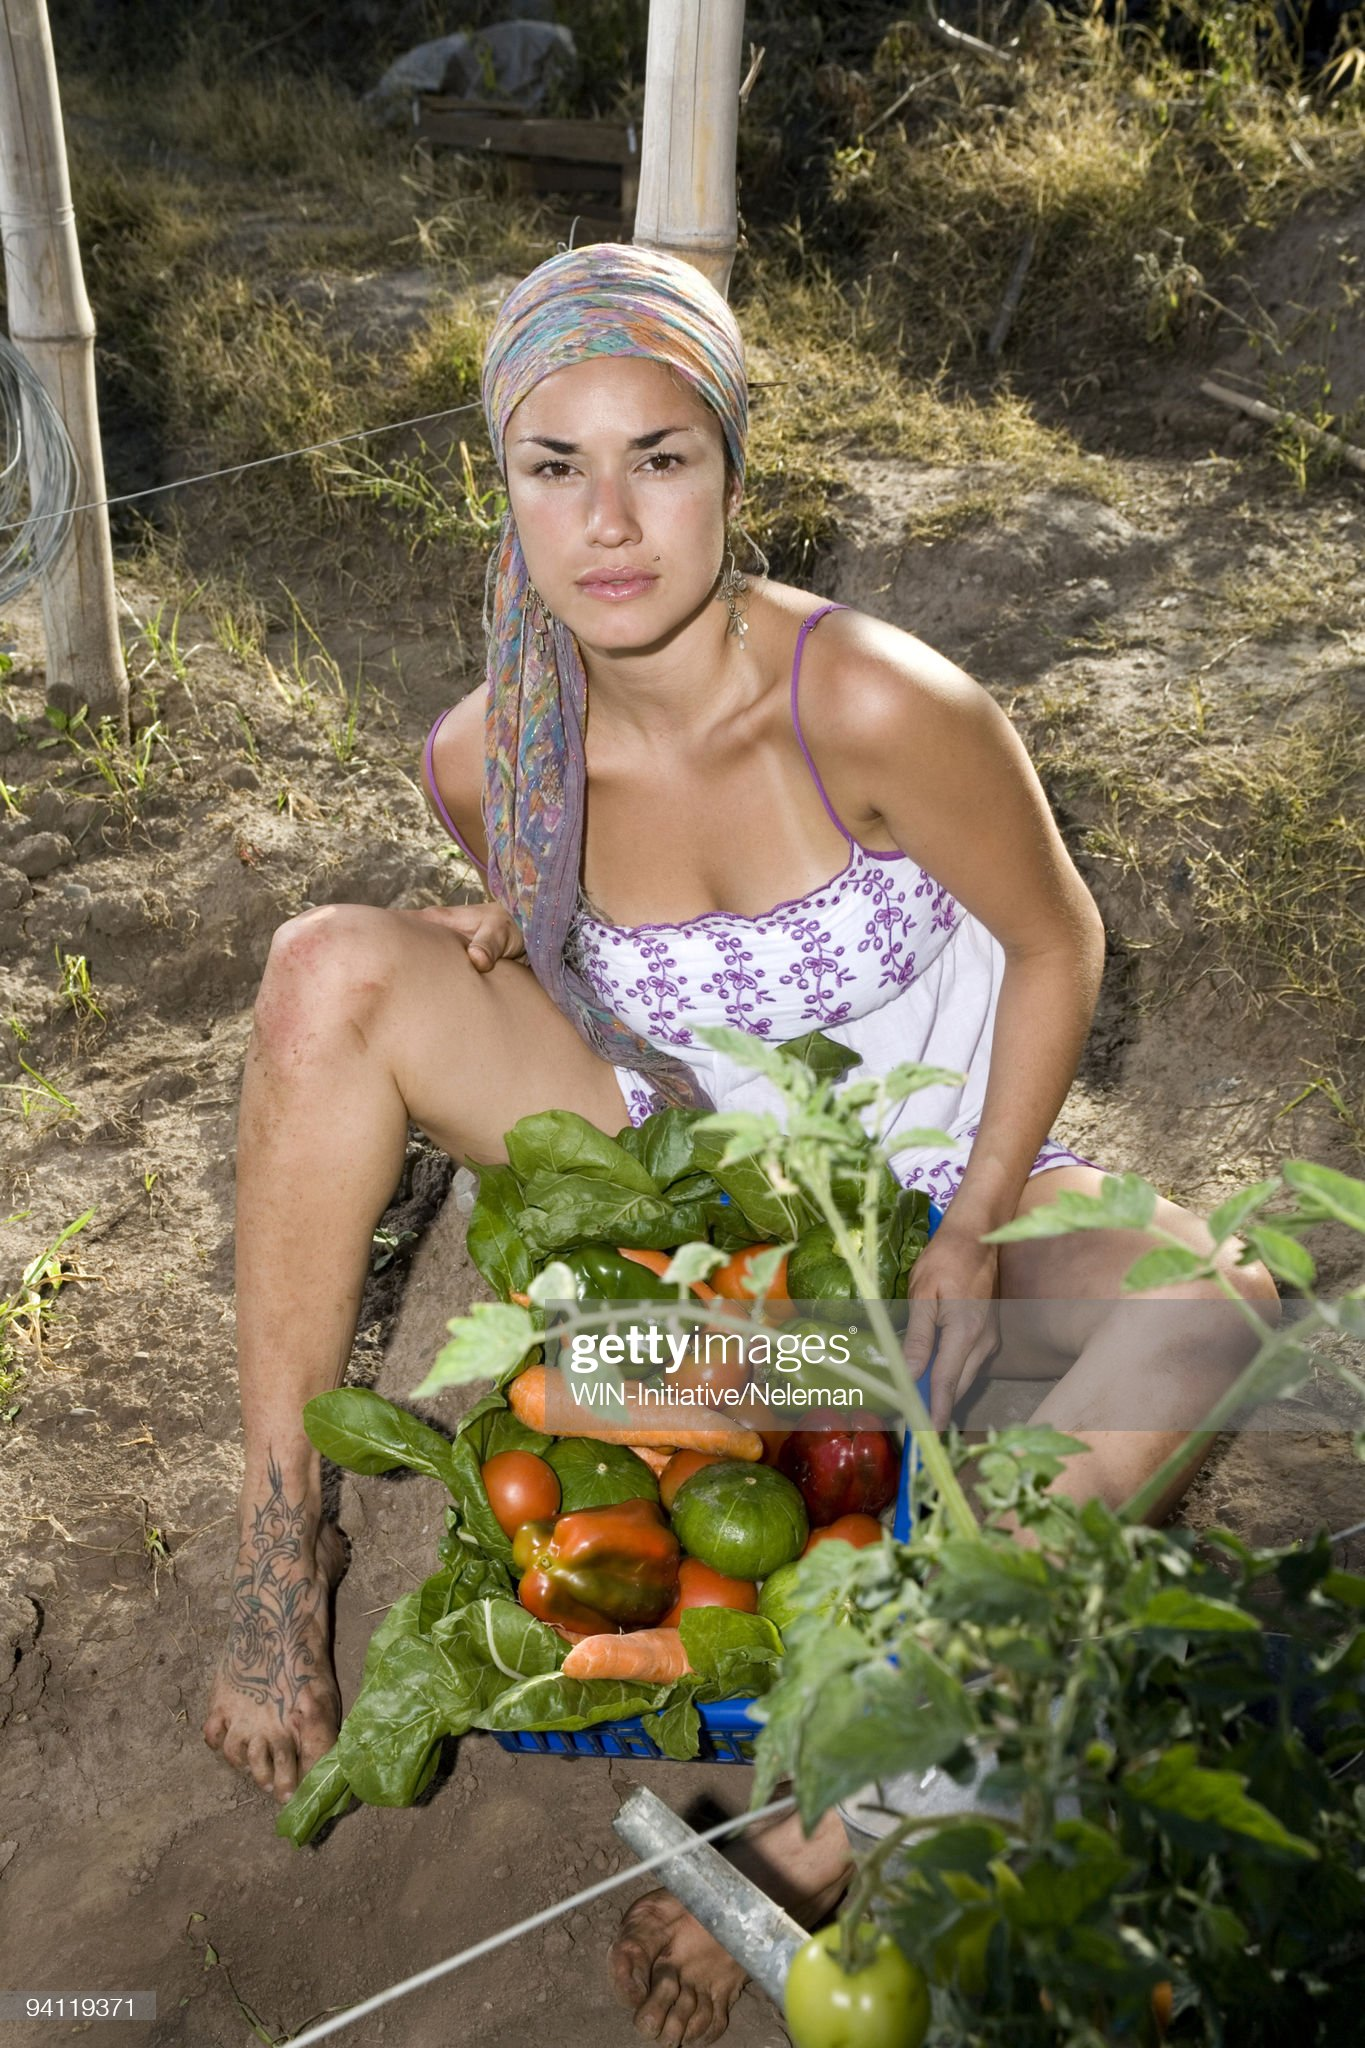 https://media.gettyimages.com/photos/woman-sitting-with-vegetables-in-a-field-tucuman-argentina-picture-id94119371?s=2048x2048